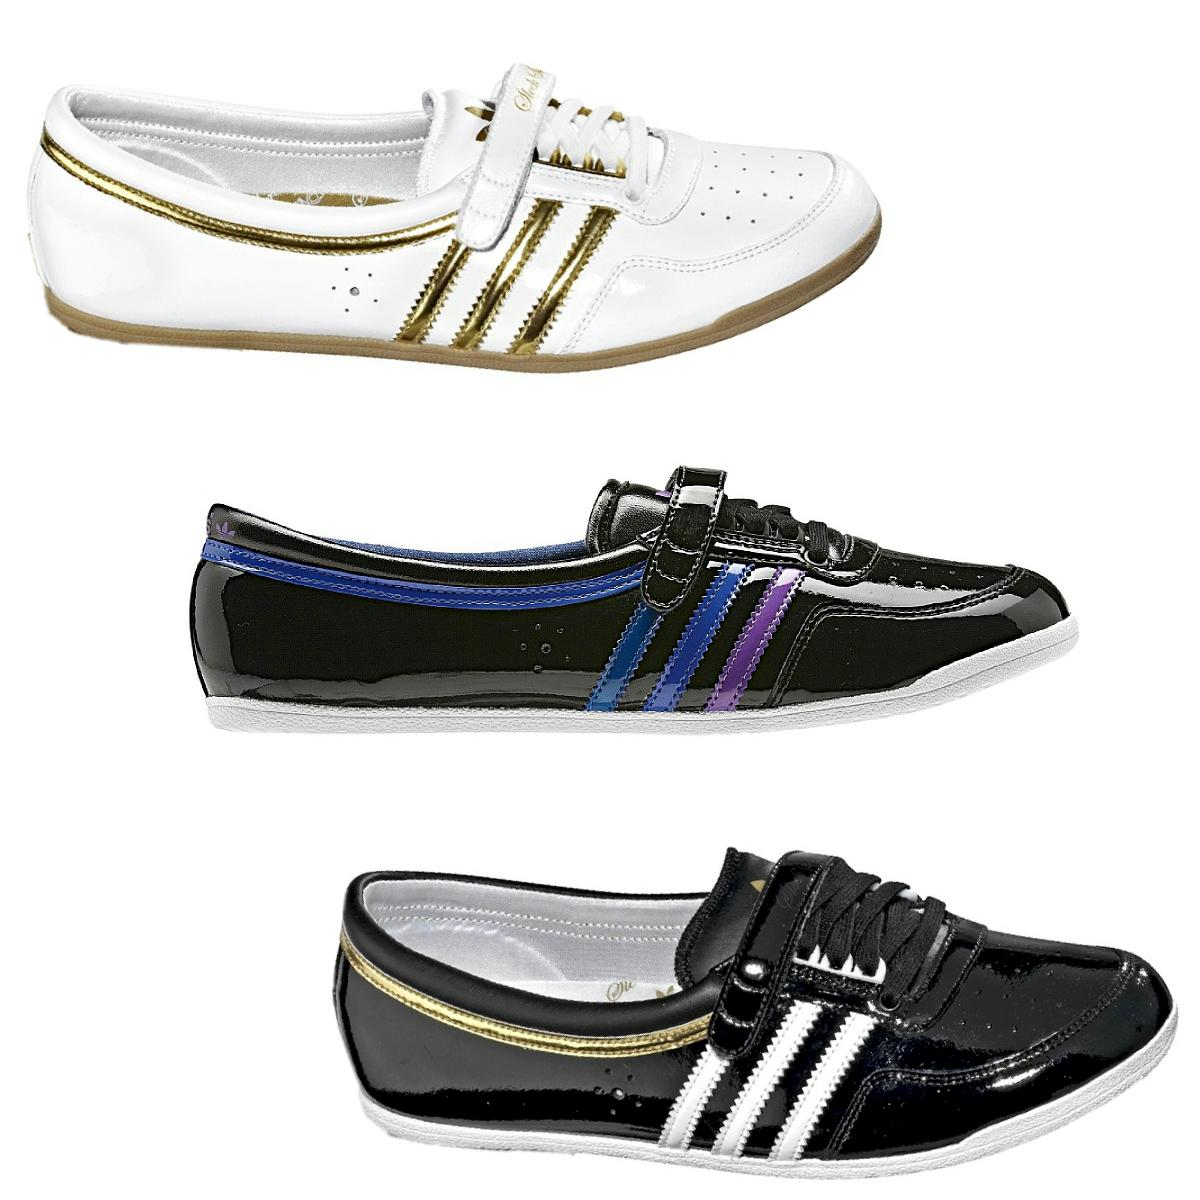 adidas originals concord round diverse farben damen schuhe ballerinas sneaker ebay. Black Bedroom Furniture Sets. Home Design Ideas